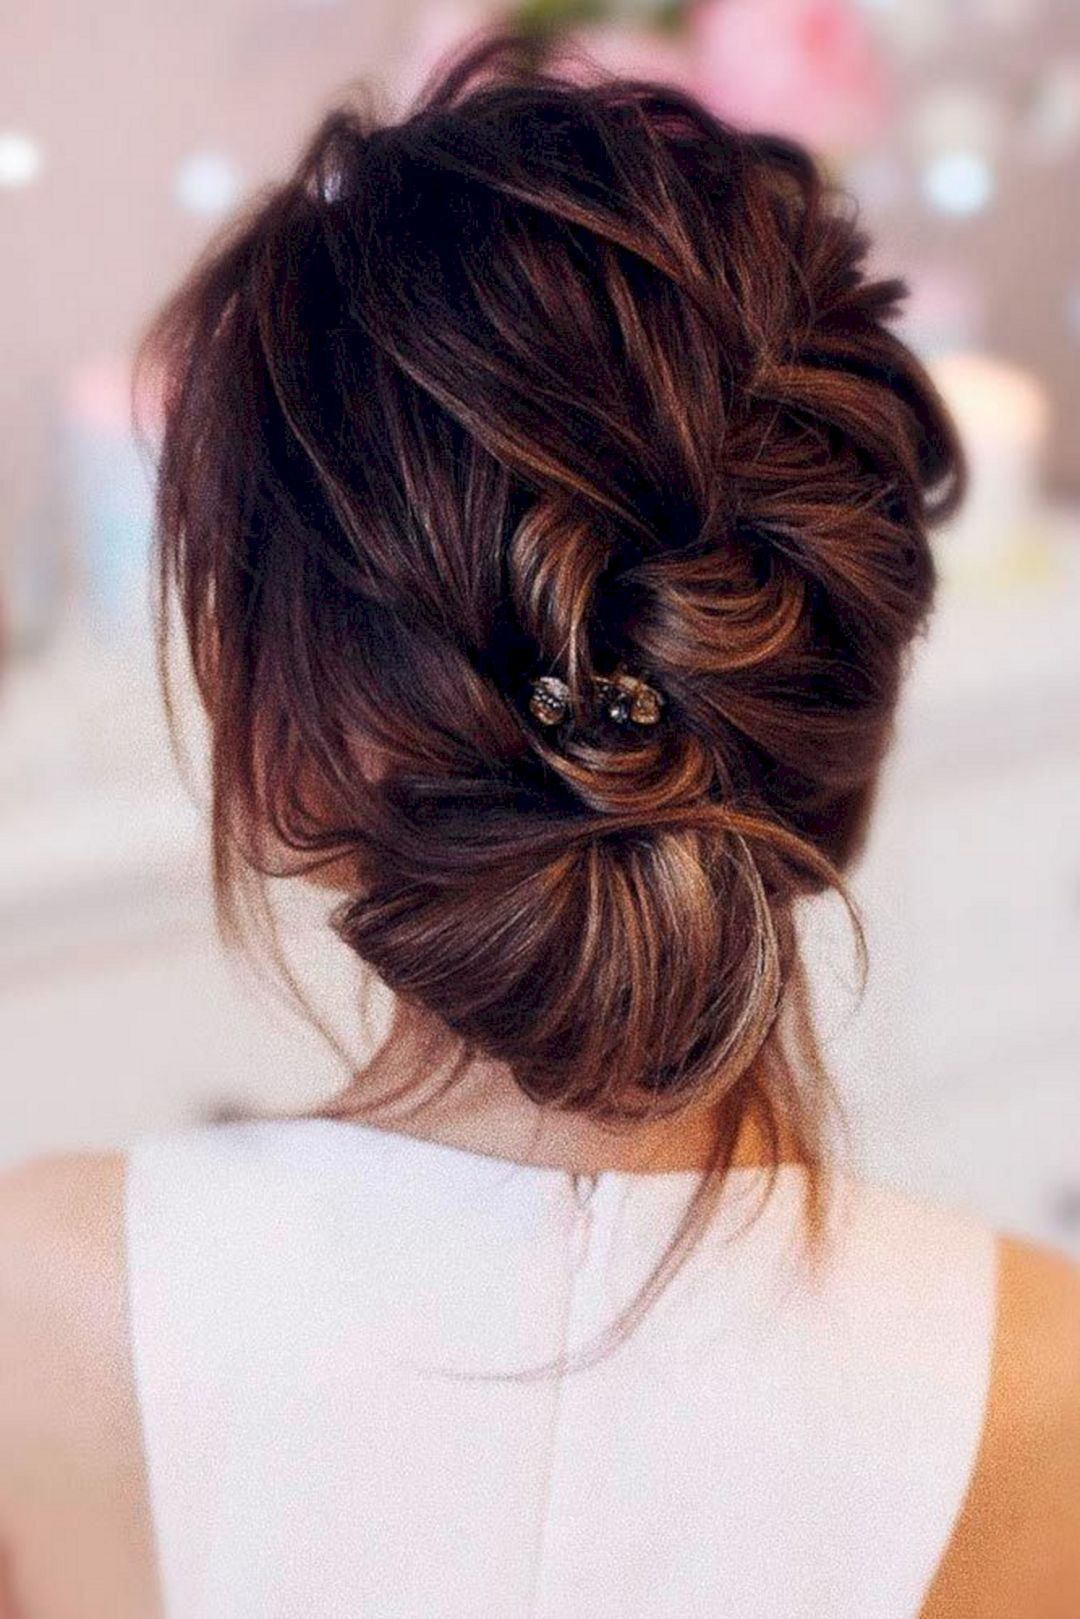 short wedding hairstyles mother of bride hair | hair | hair